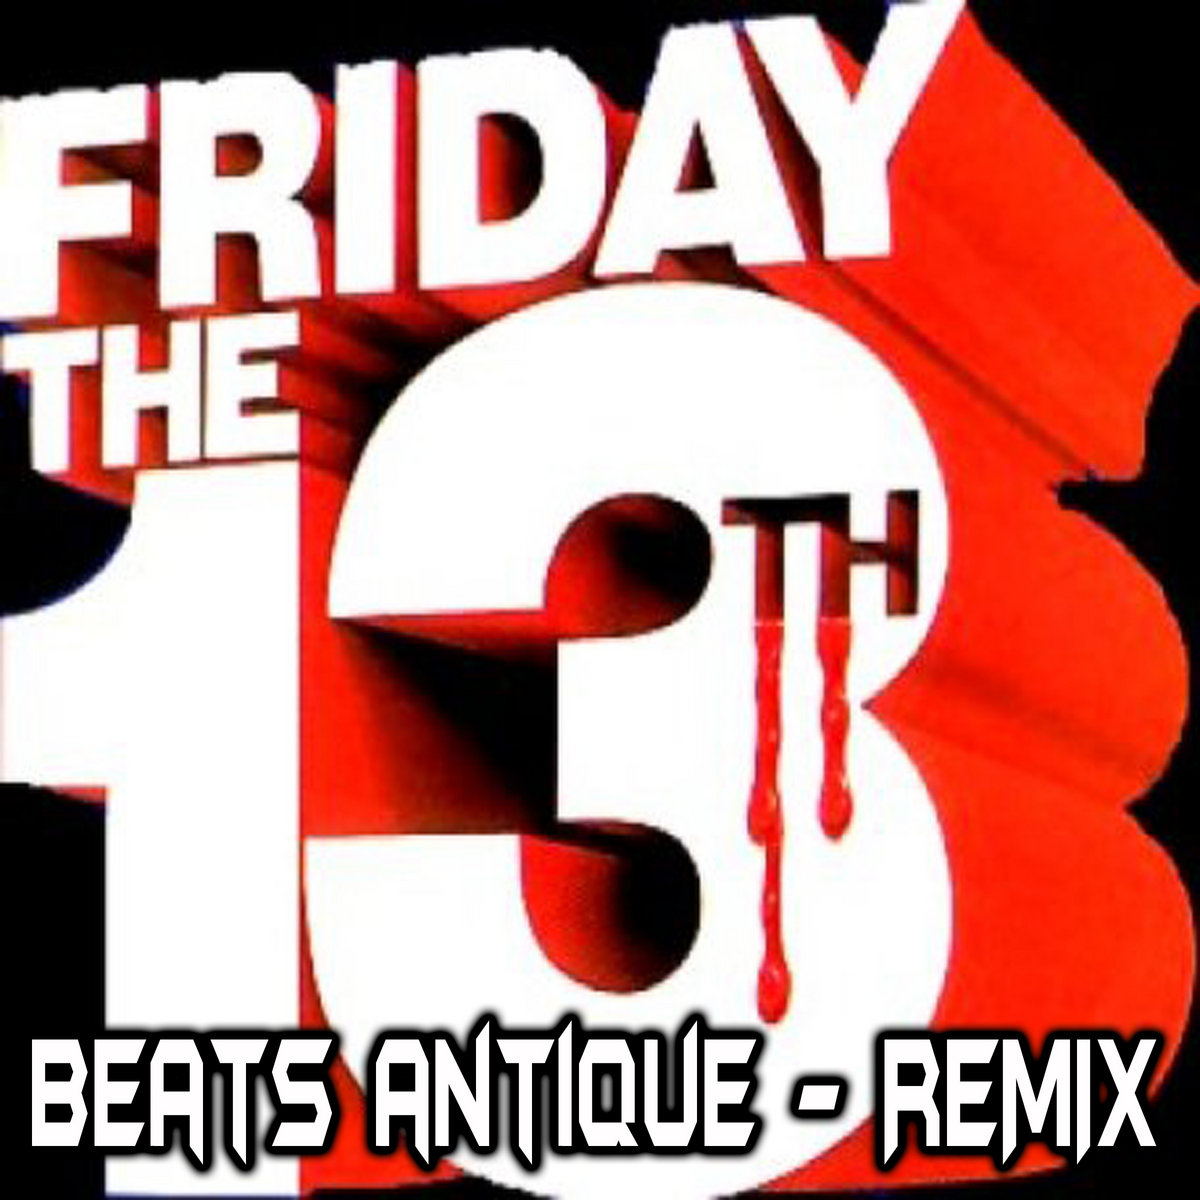 FRIDAY THE 13th - Beats Antique REMIX | beats antique